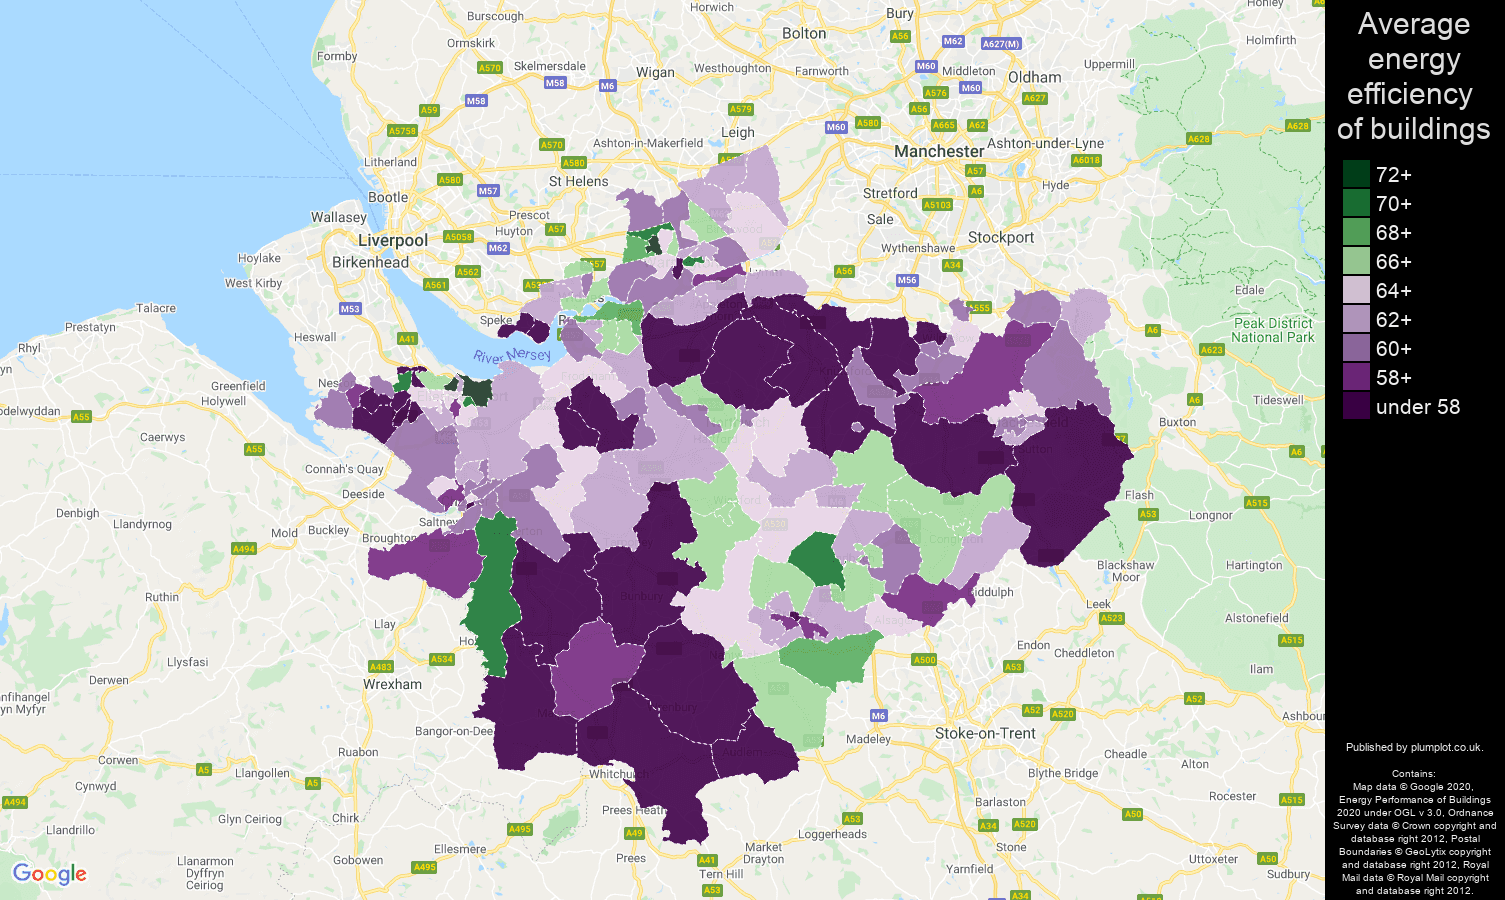 Cheshire map of energy efficiency of houses